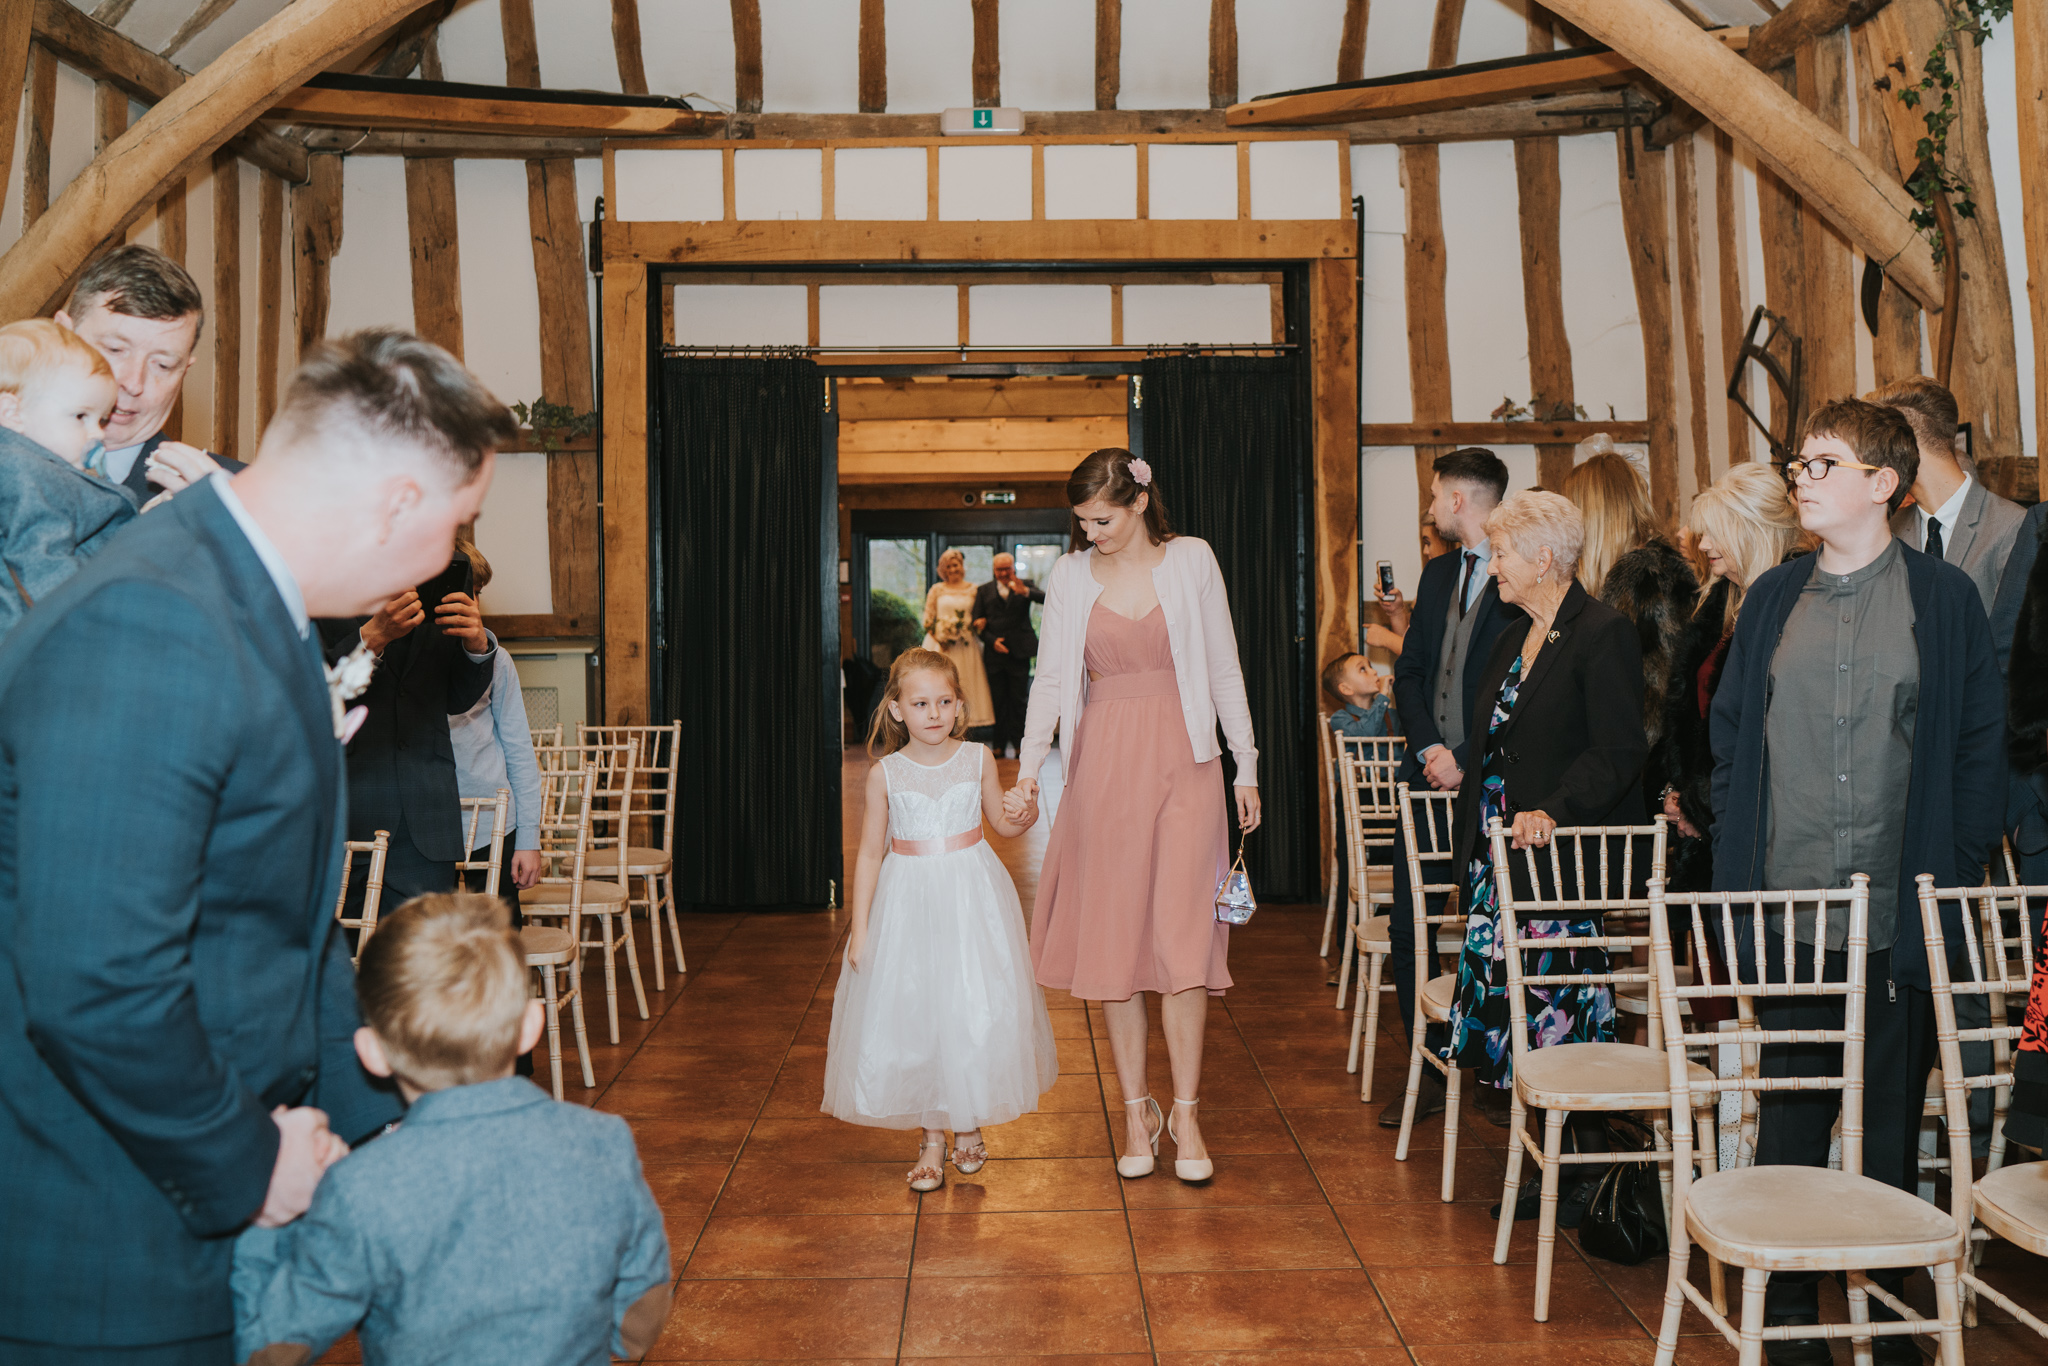 rhia-james-rustic-crabbs-barn-vintage-50s-retro-wedding-grace-elizabeth-colchester-essex-alternative-relaxed-wedding-family-photography-devon-suffolk-norfolk-essex (67 of 138).jpg